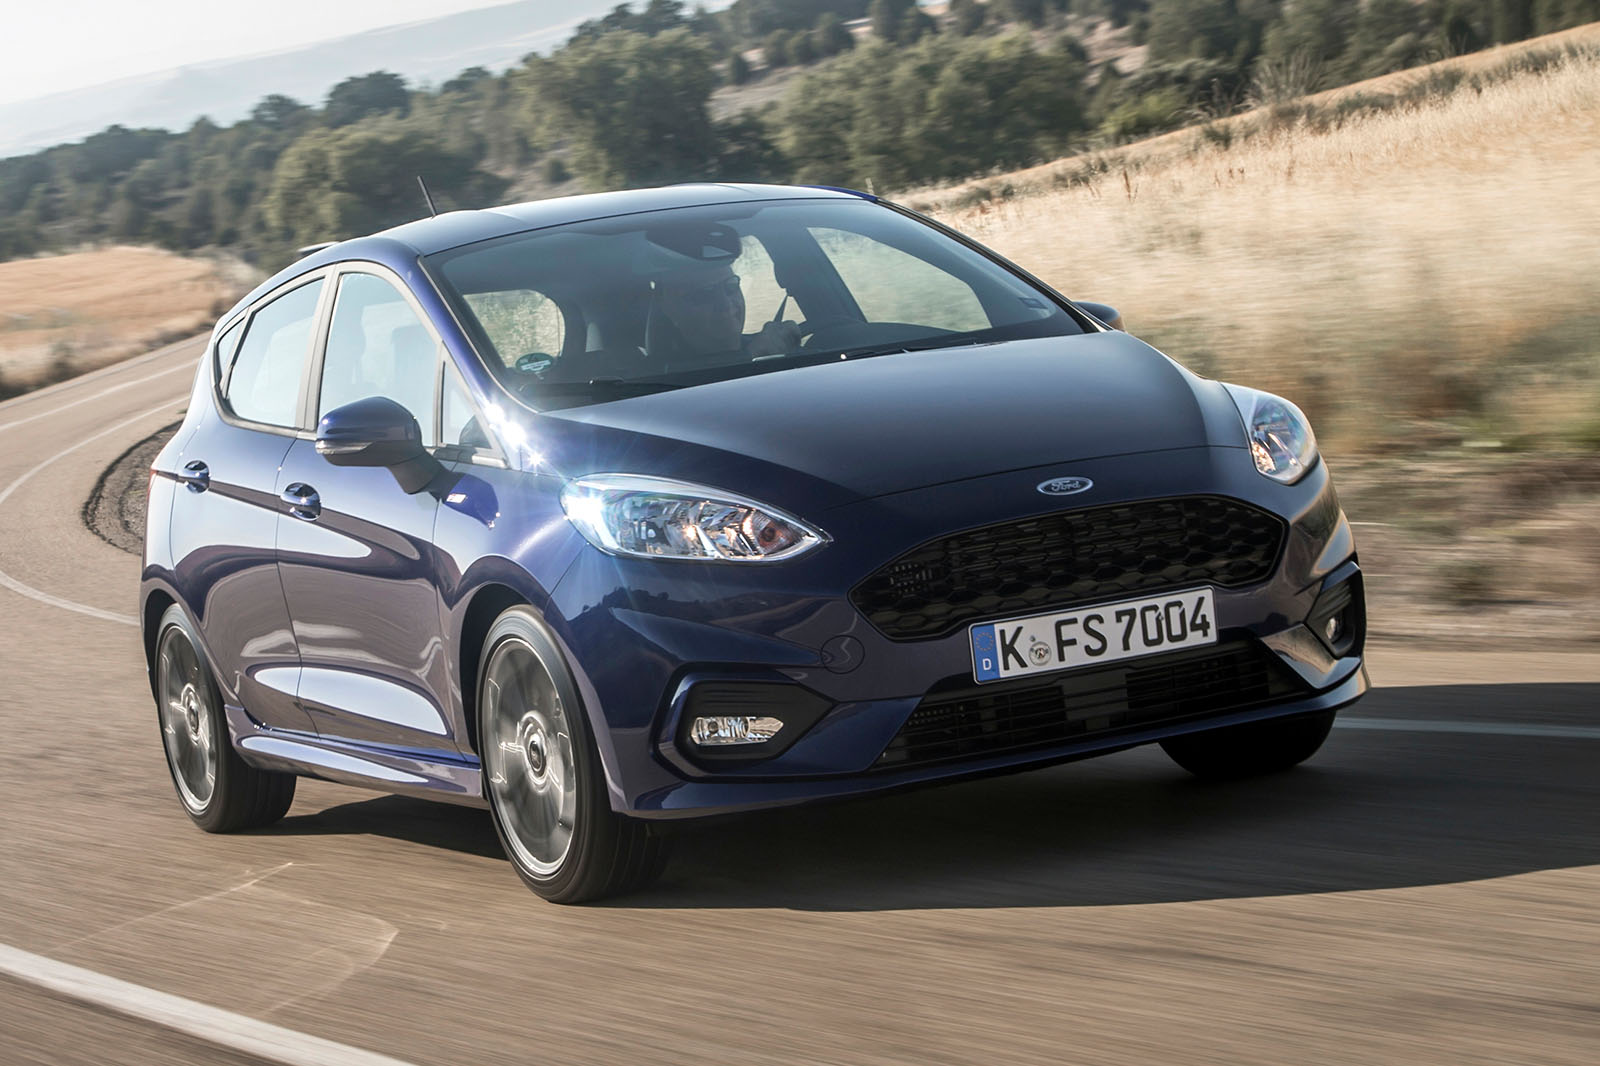 The 2017 Fiesta also has the option of more in the way of driver assistance technology than the previous model such as Pedestrian Detection that works at ... & New Ford Fiesta 2017 review | Autocar markmcfarlin.com